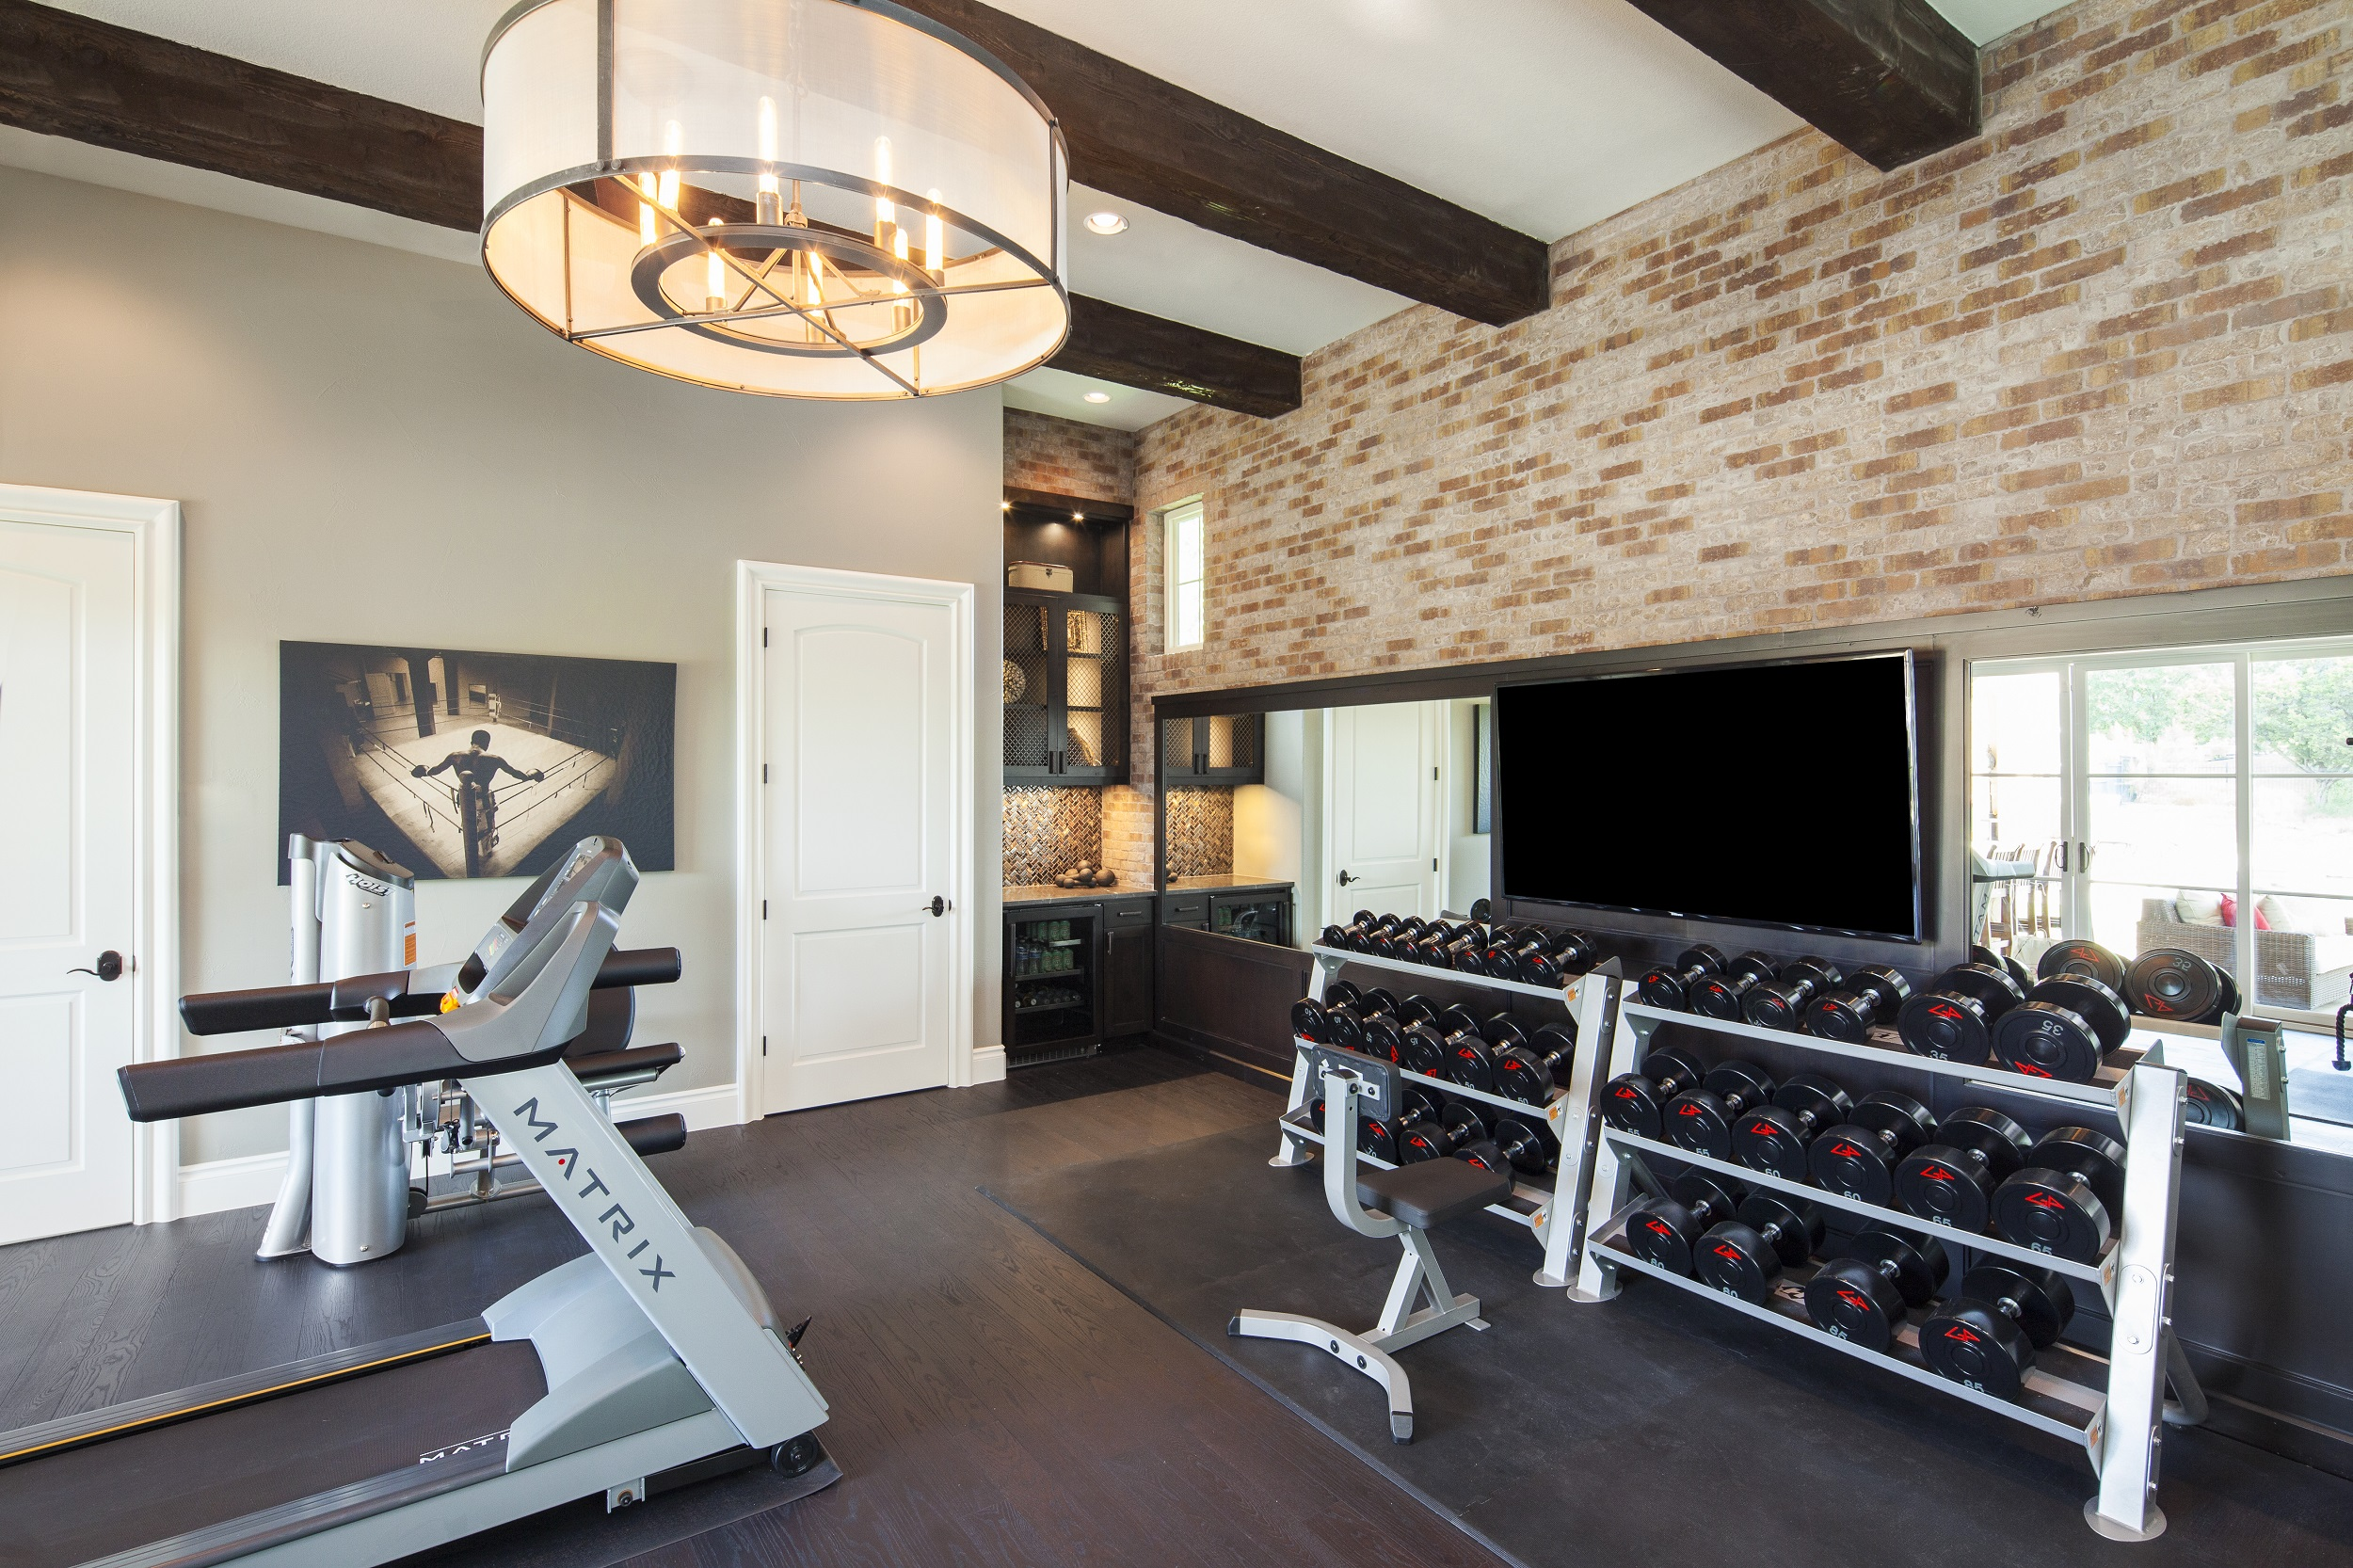 the space combines historic references with a clean aesthetic to form a masculine gym maintaining its integrity through the use of high end finishes and